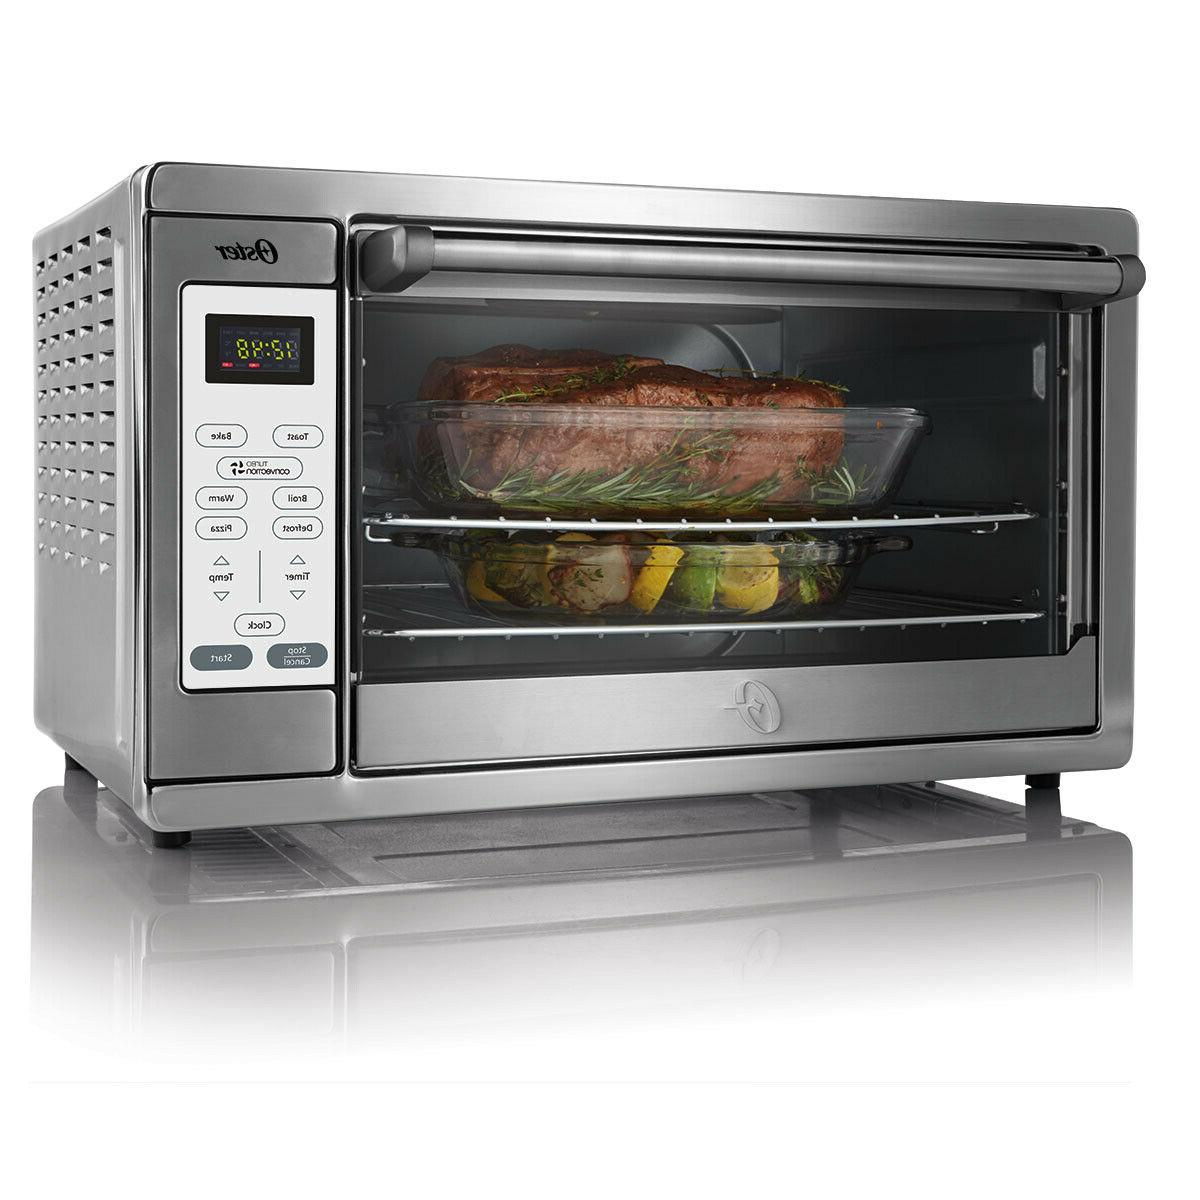 Oster TSSTTVXLDG Extra Large Digital Convection Toaster Oven